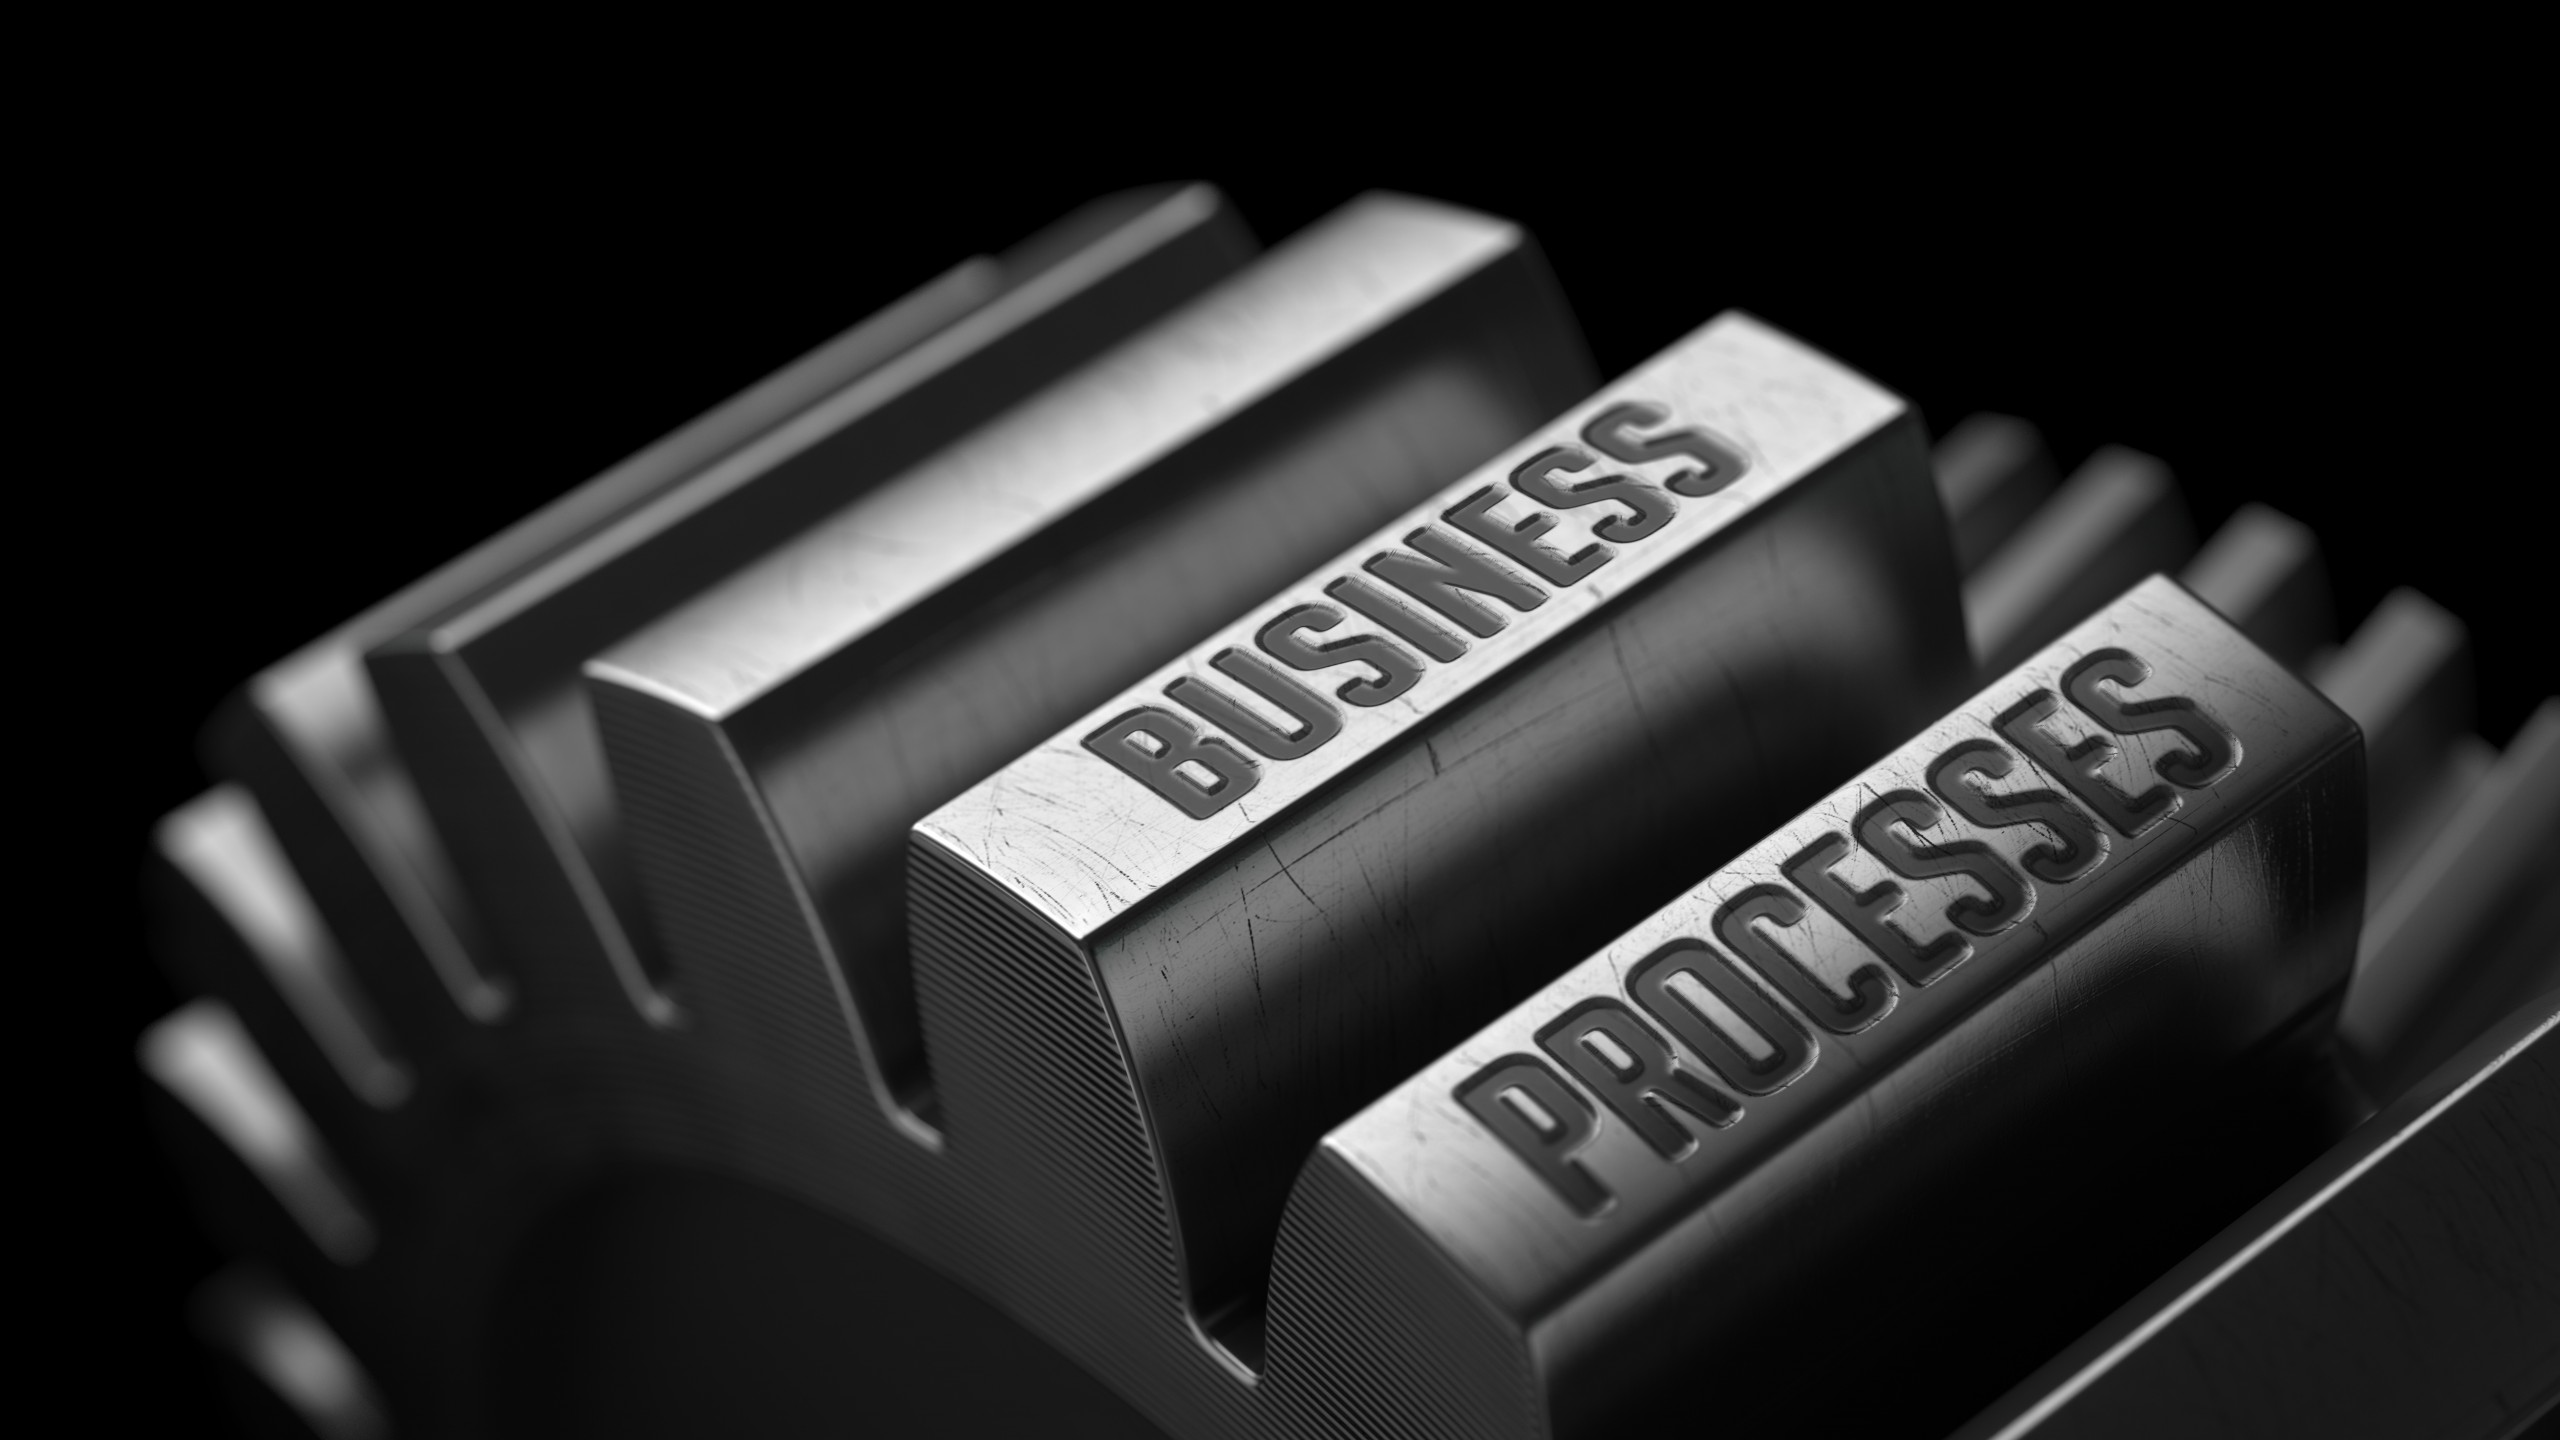 Business Processes can be analyzed for process improvement and reengineering